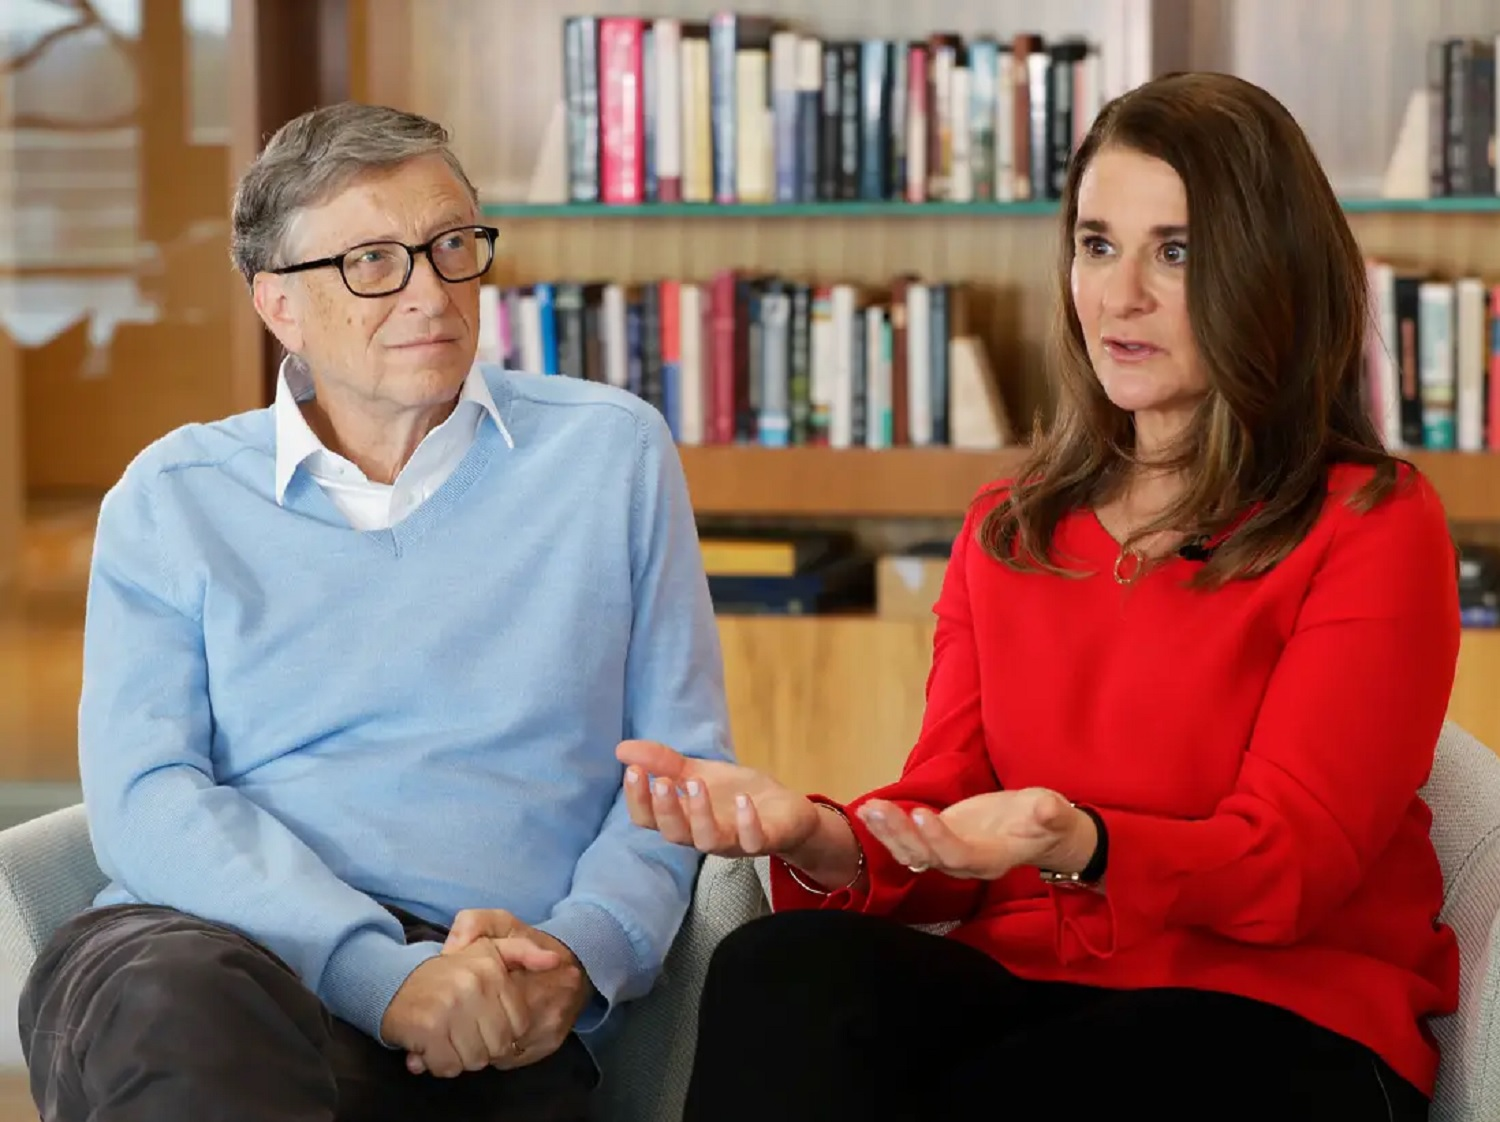 Gates Foundation pledges $250m for devt, distribution of COVID-19 tests, treatments, vaccines